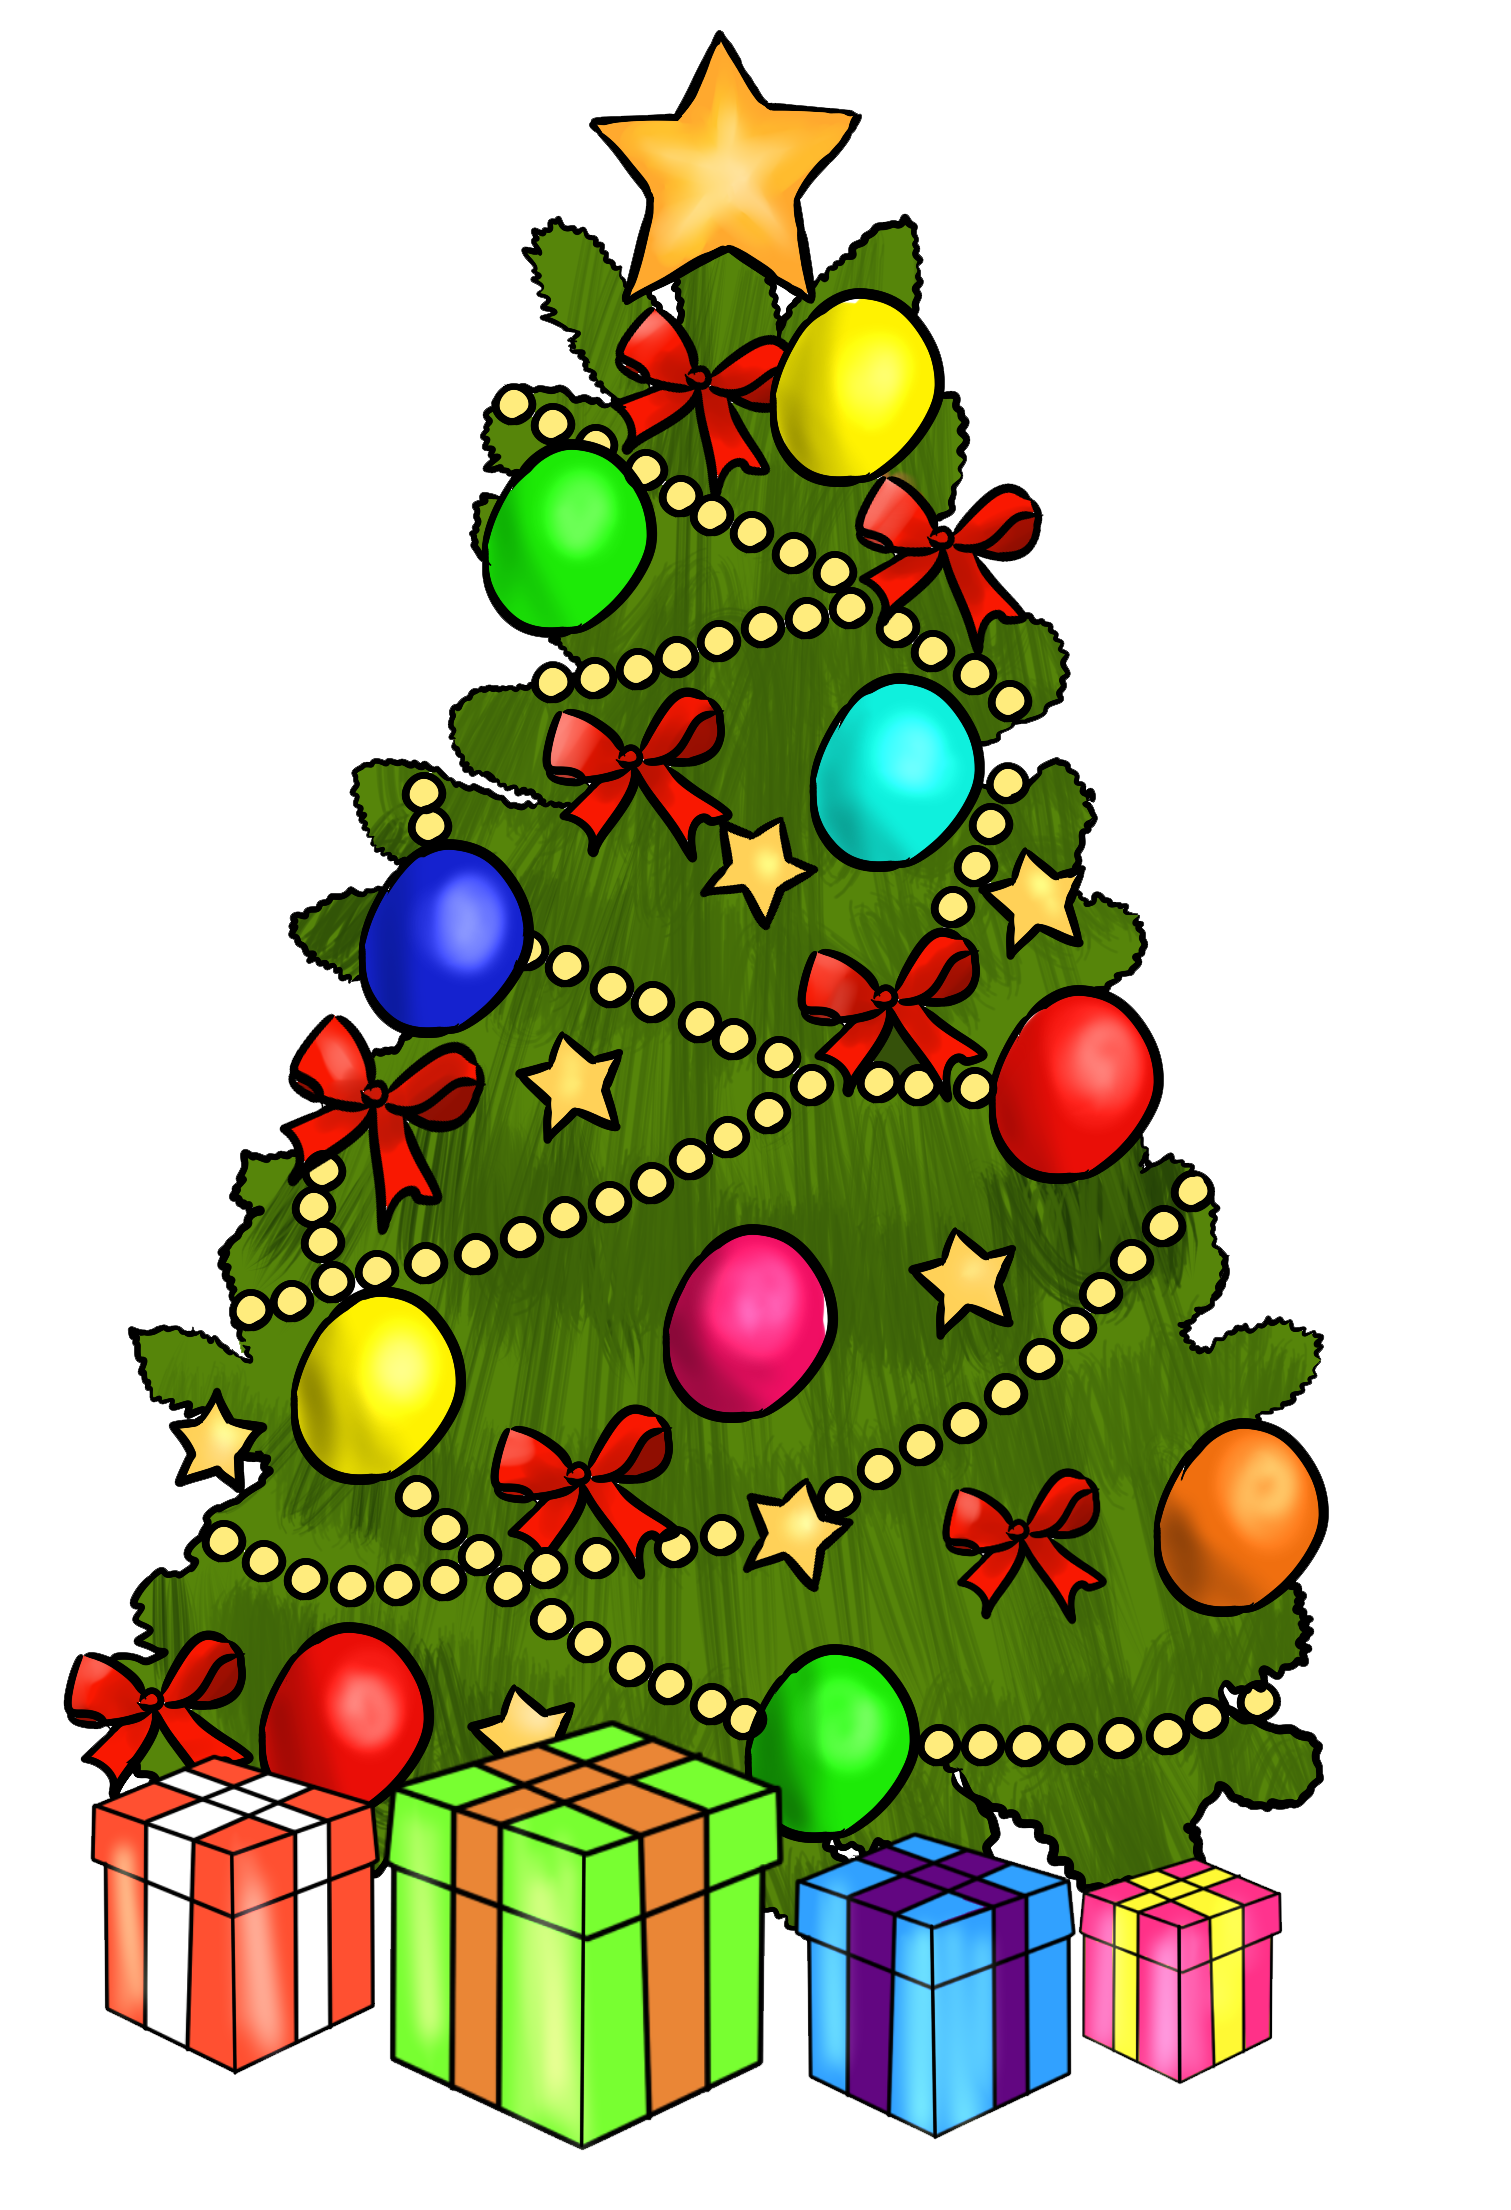 Rv clipart merry christmas. Free download clip art